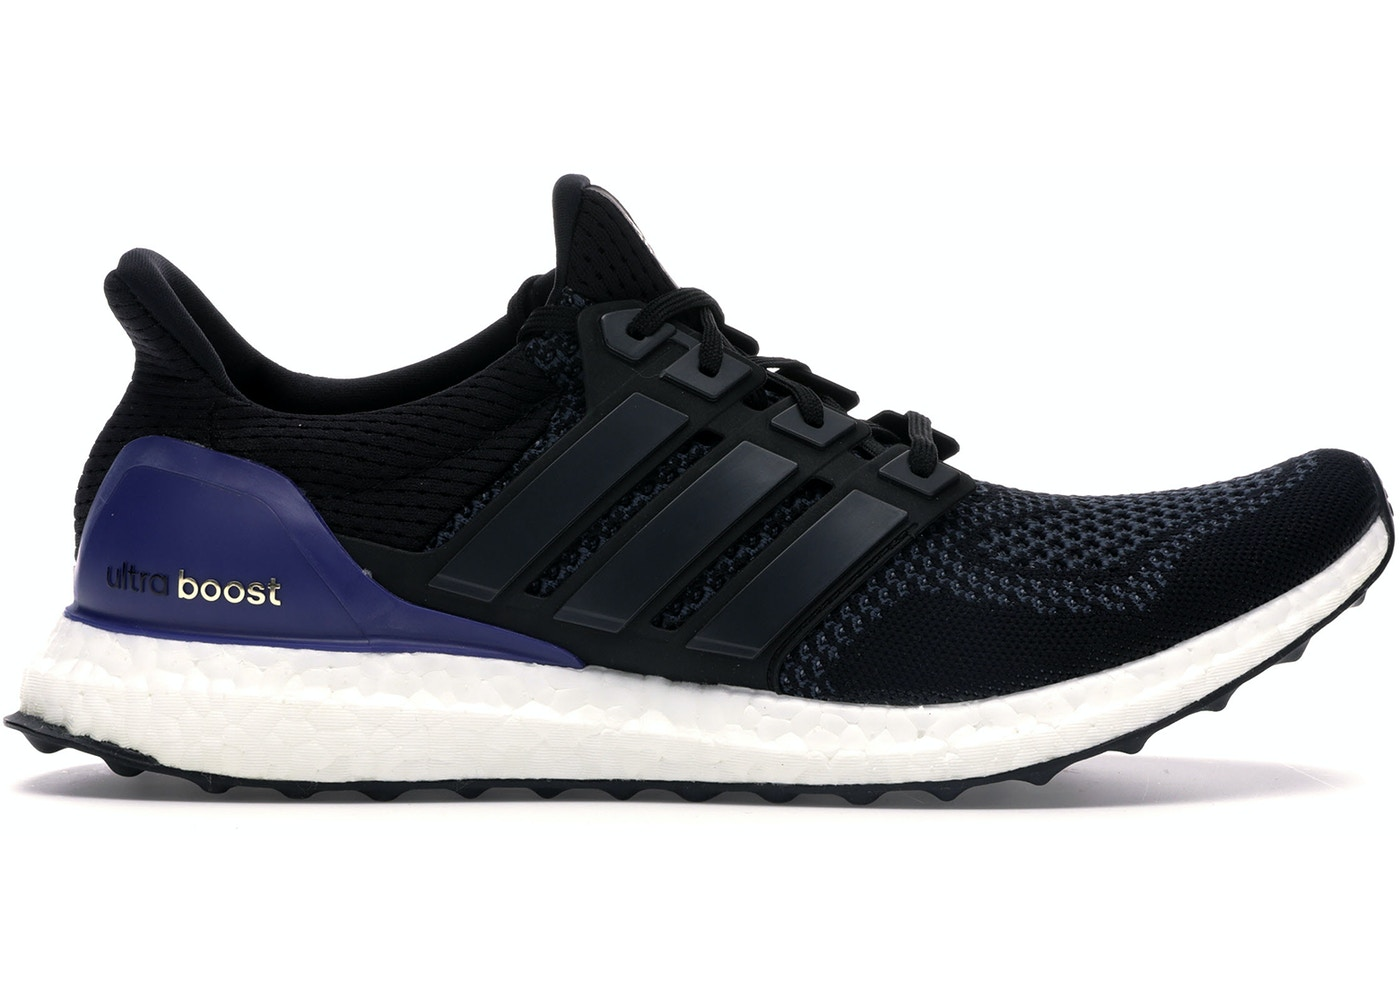 check out 90376 7bb85 adidas Ultra Boost 1.0 OG Black Gold Purple